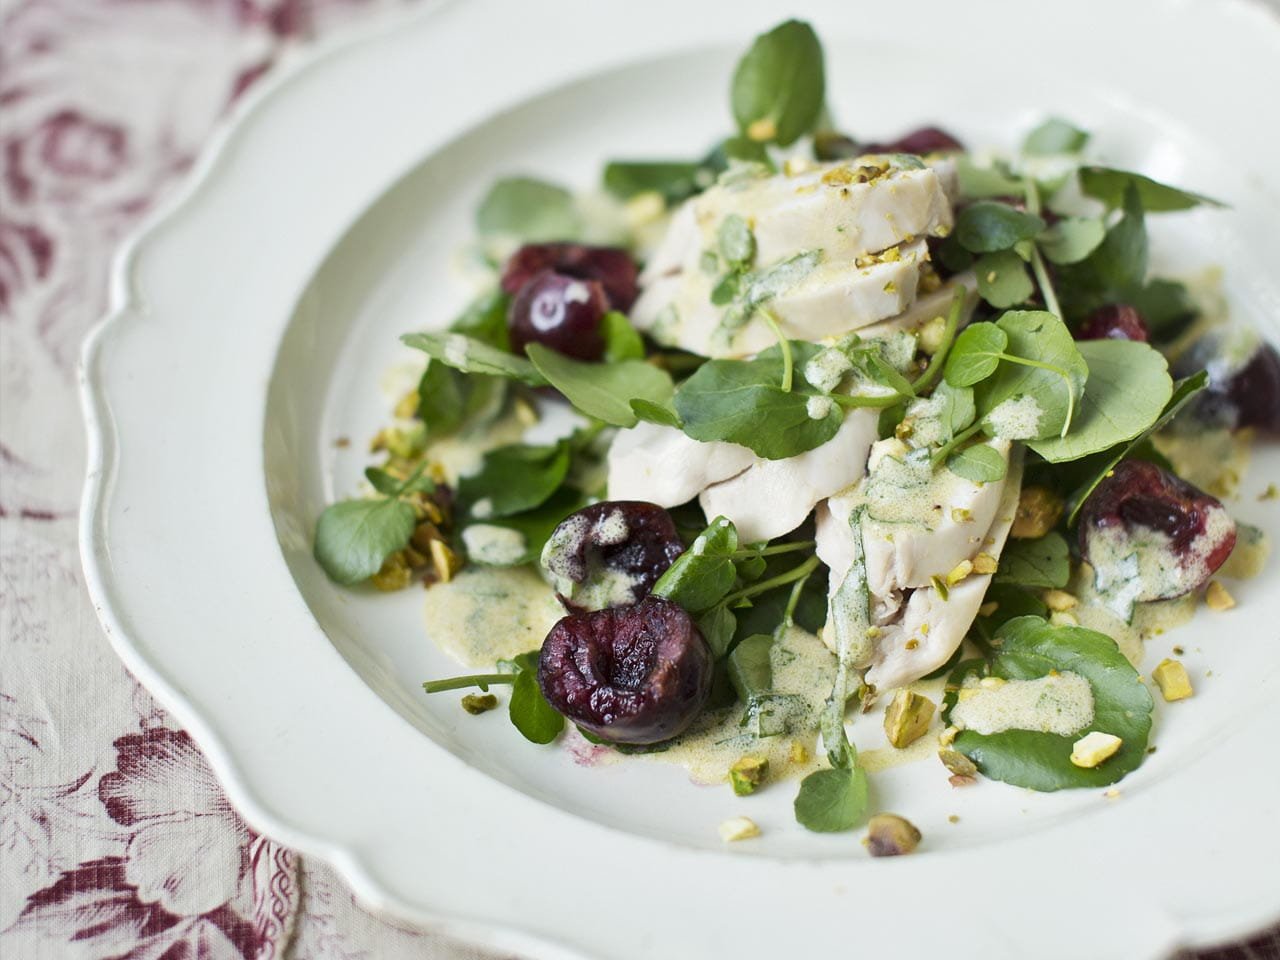 Chicken salad with cherries, watercress and tarragon dressing